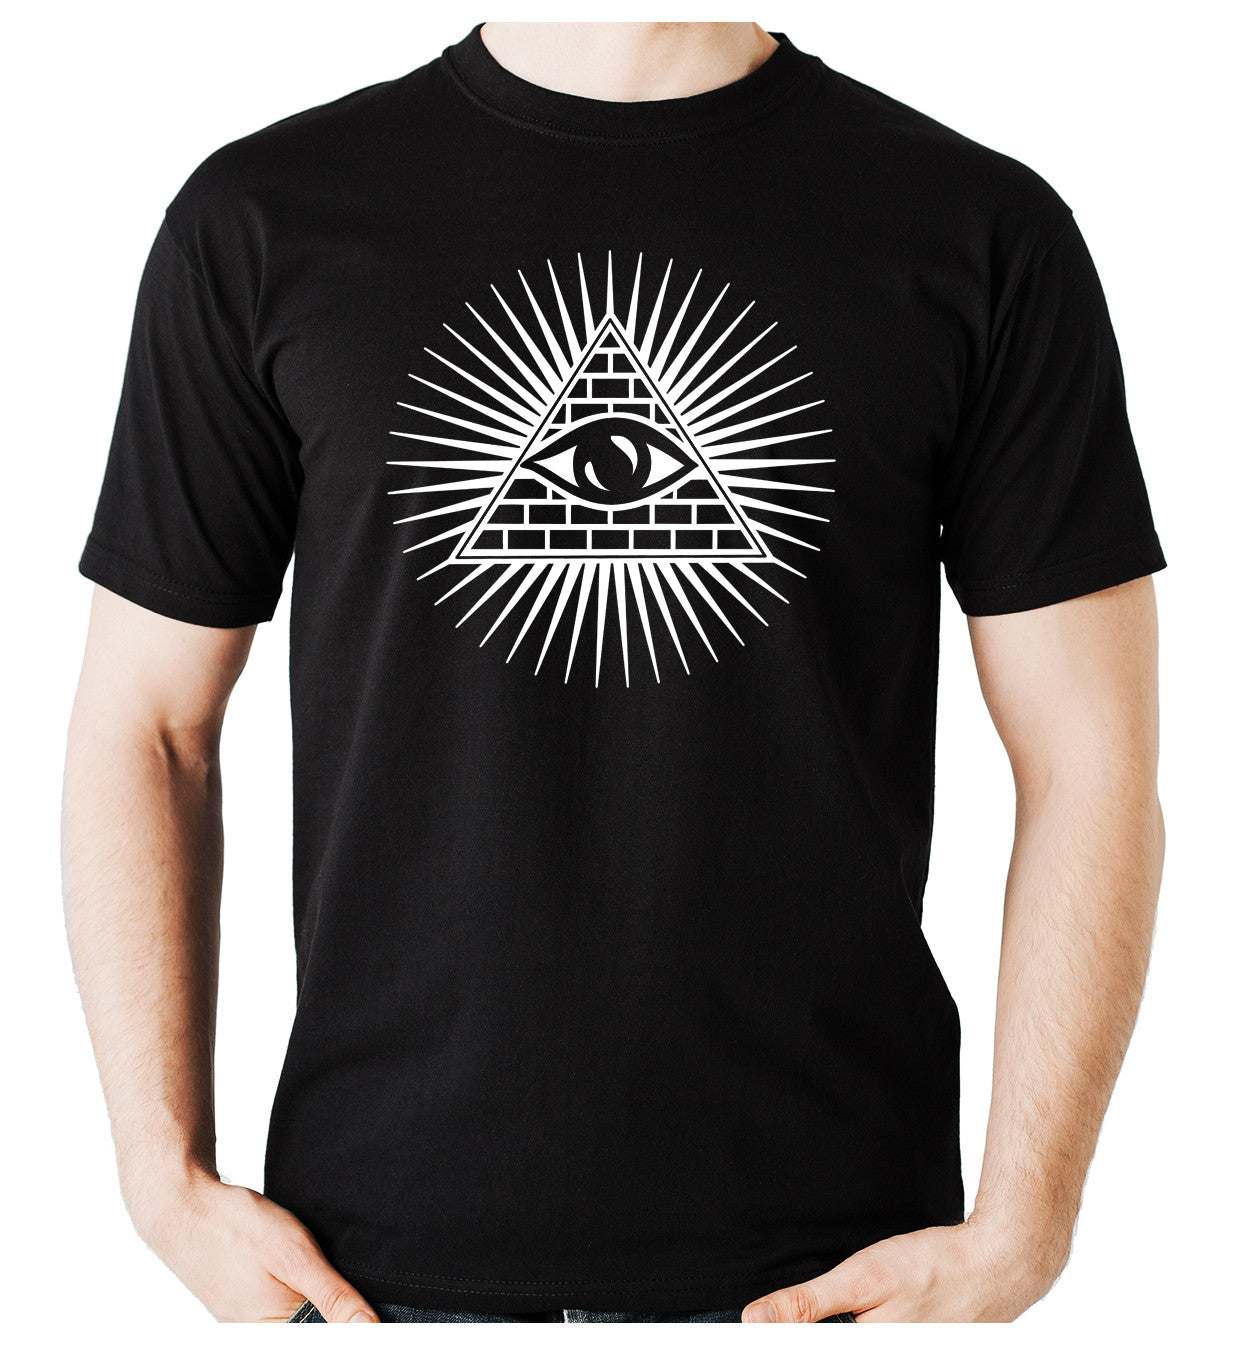 Illuminati Secret Society T-Shirt Alternative Clothing The Order of the Day Freemasonry